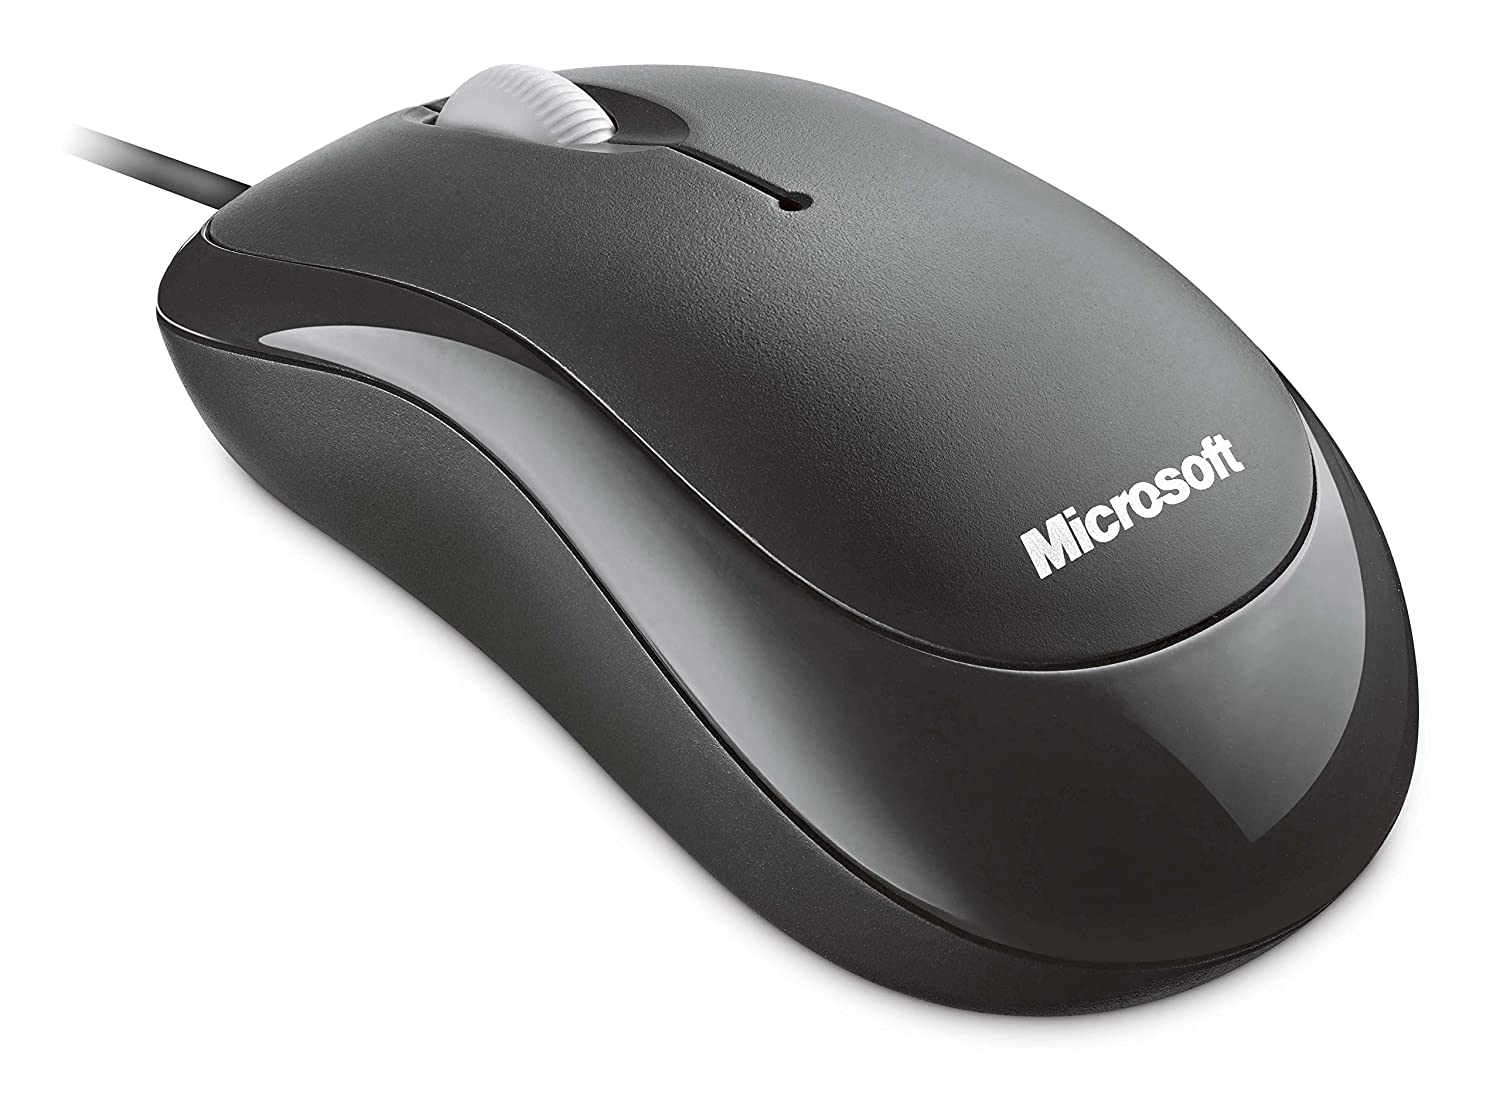 Microsoft Basic Optical Mouse Microsoft - Hardware 4YH-00007 Mice & Presentation Pointers Microsoft Corporation Video Game Accessories